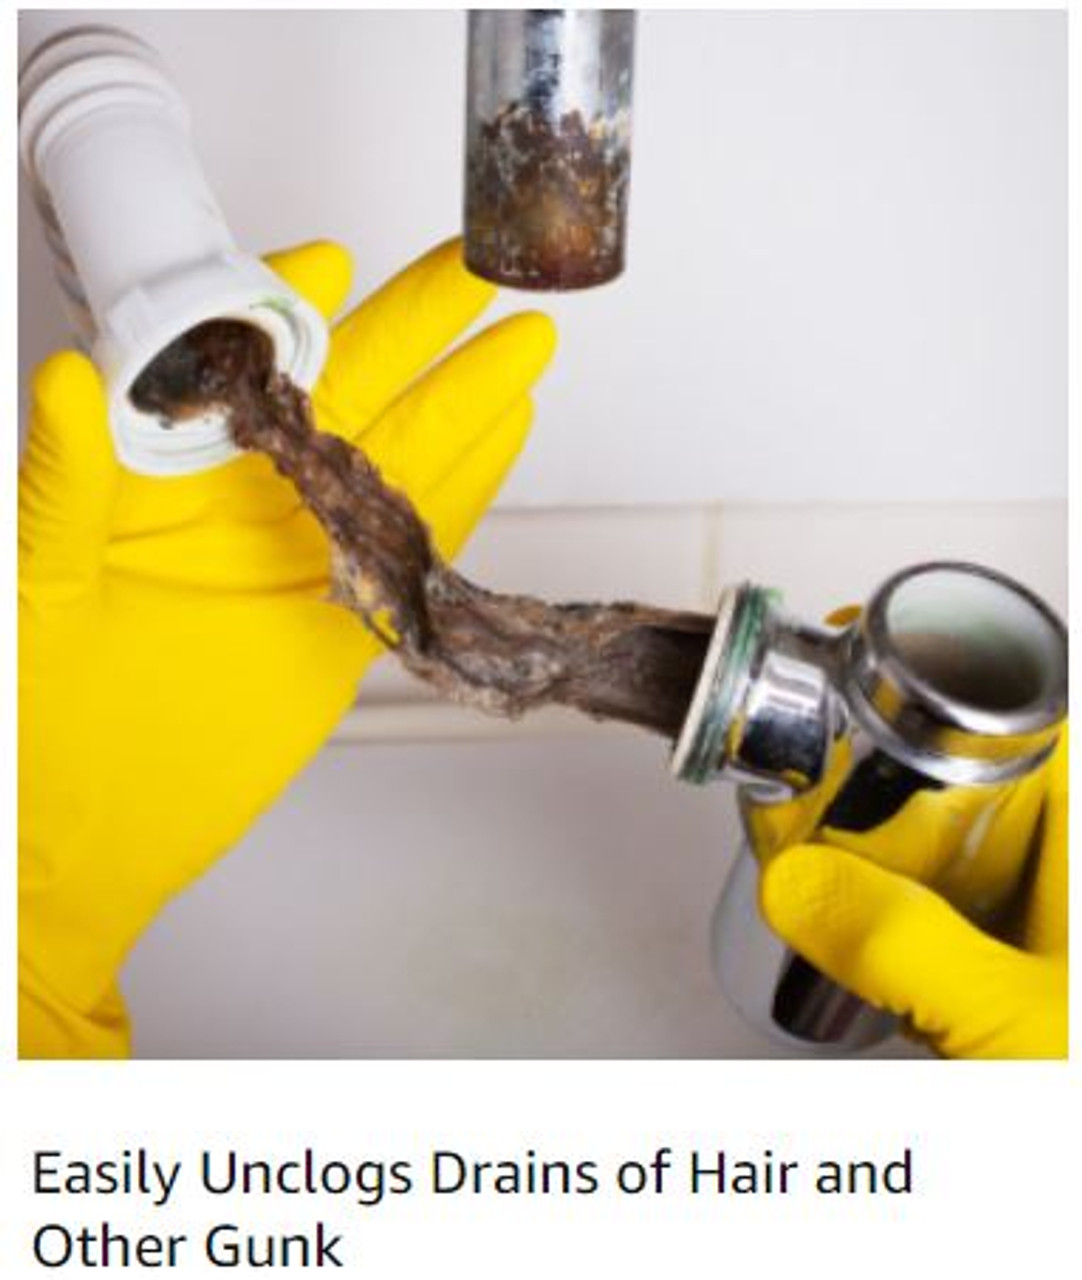 Got hair in your drain? Unclog it with a drain brush